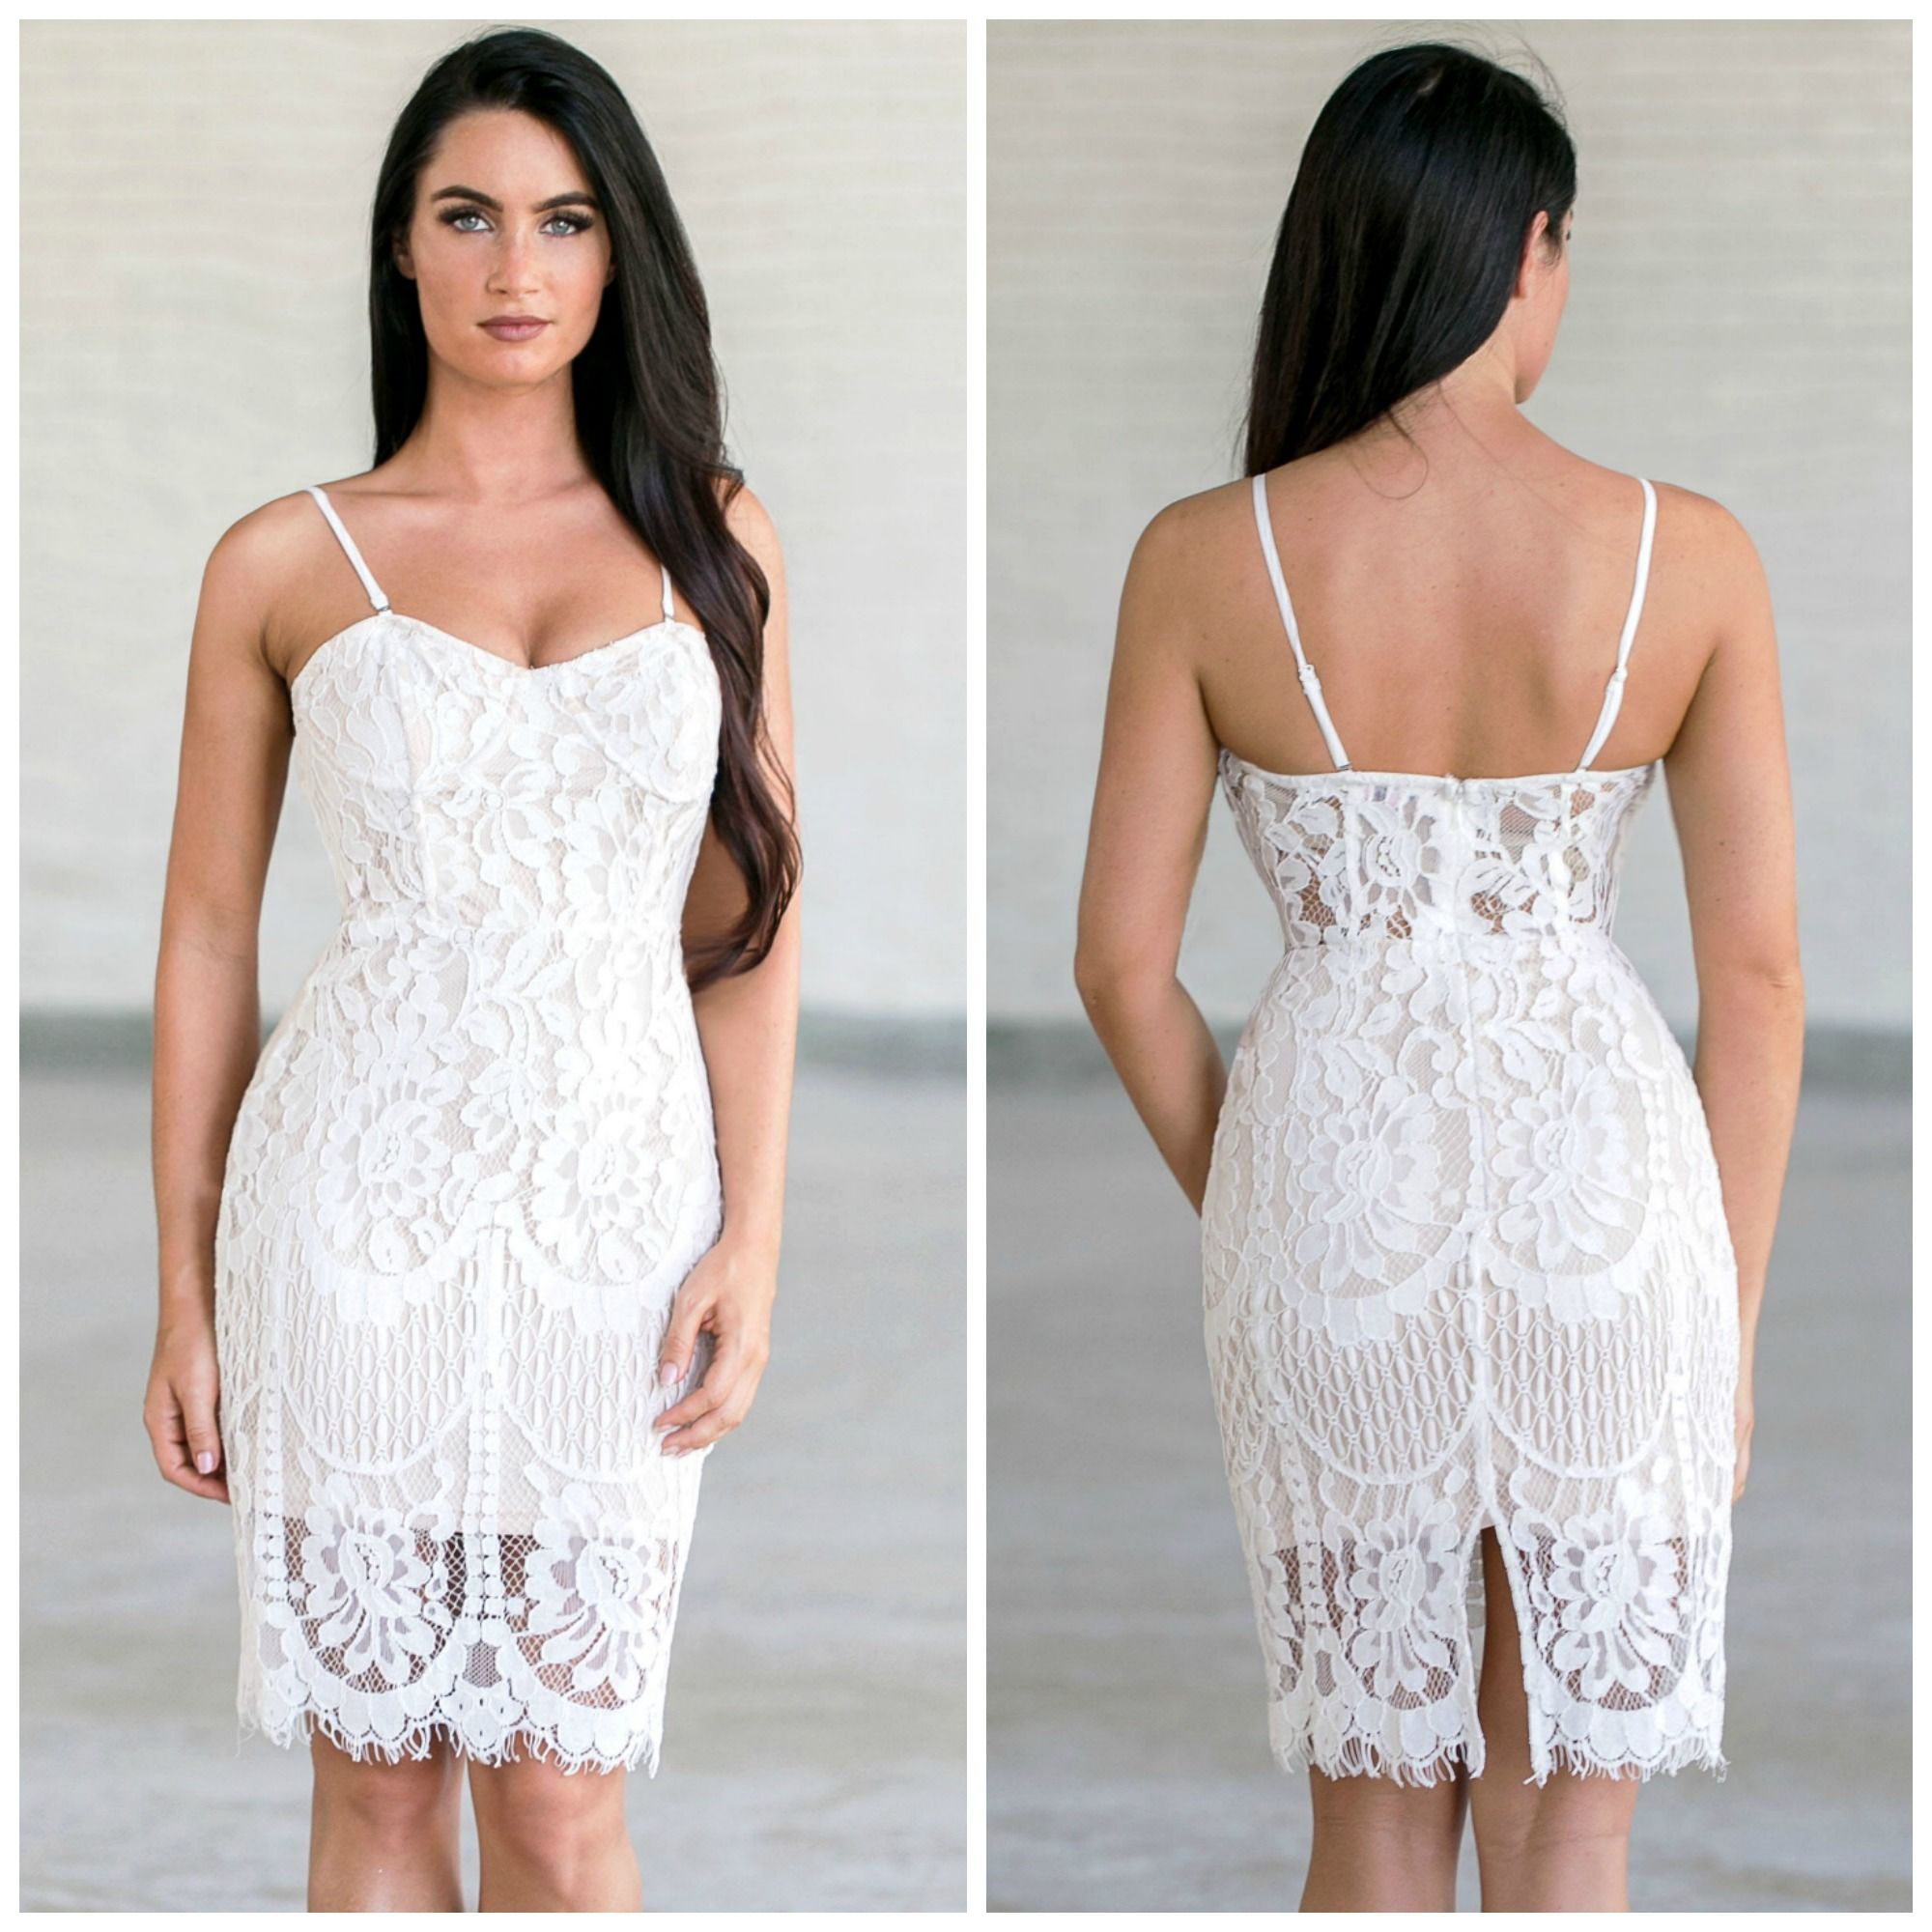 Lace dress maxi  This lace dress is a cute option for a bachelorette party